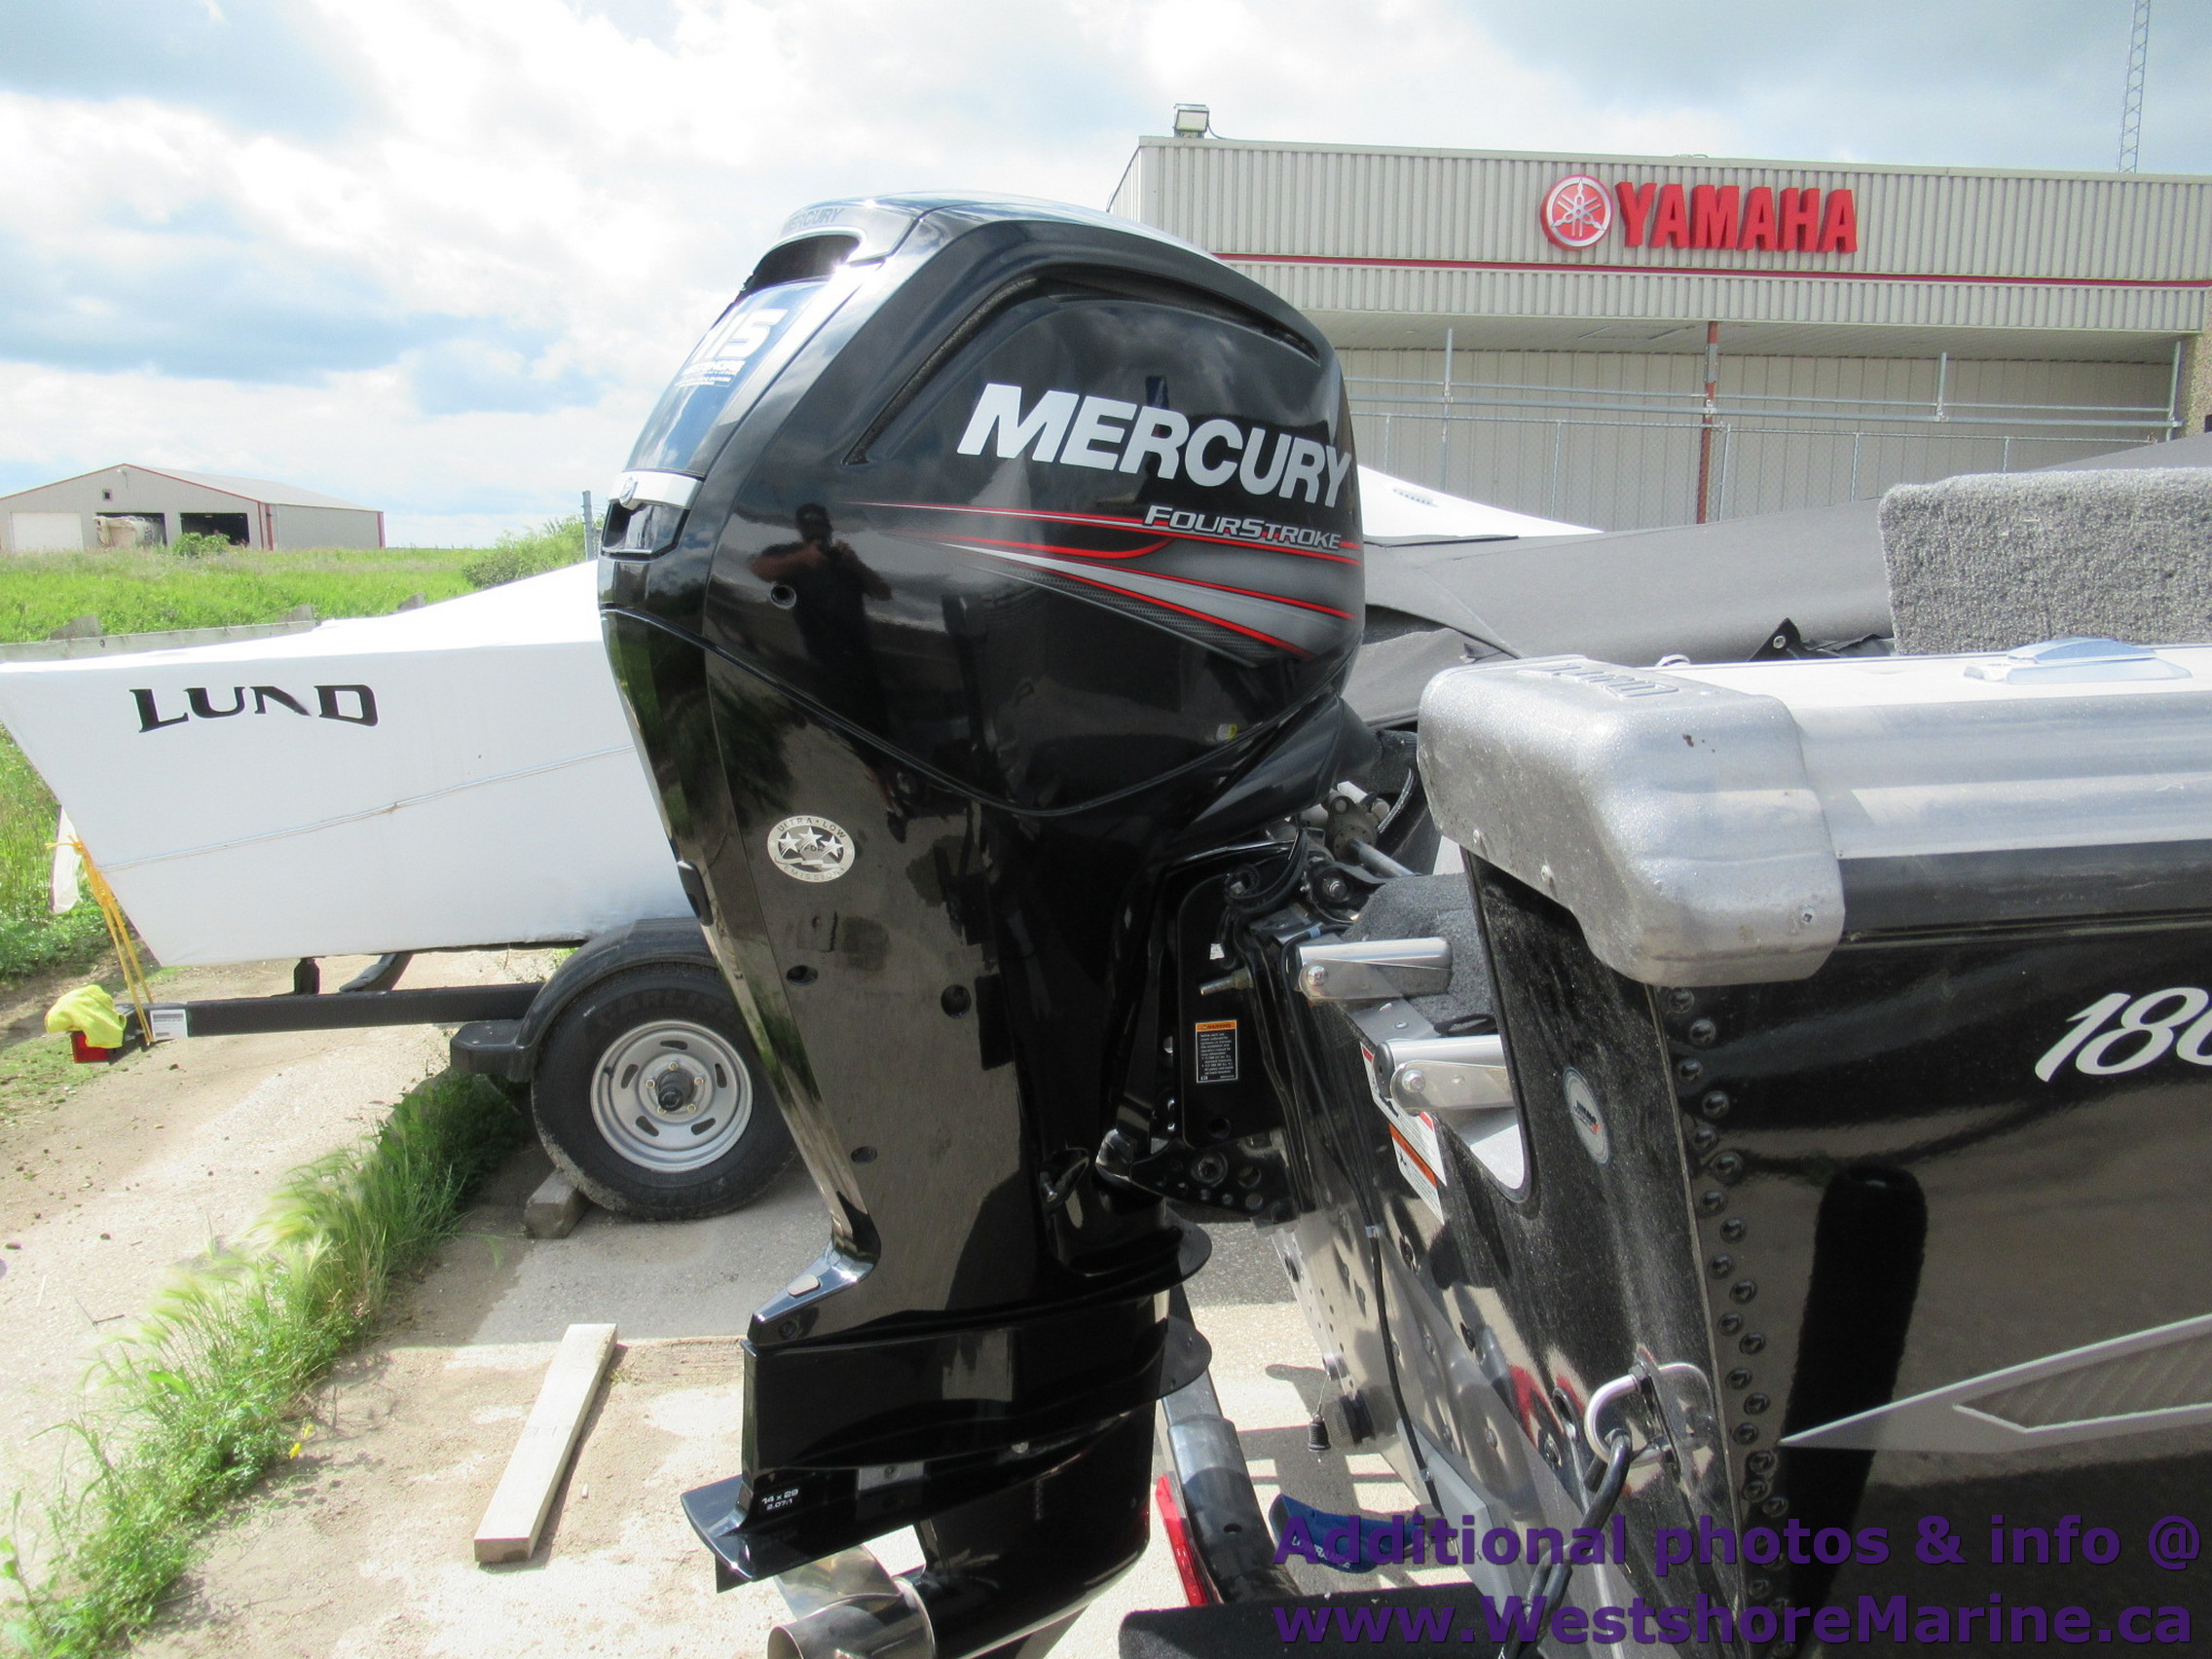 New Mercury Outboard Motors for Sale in Arborg | Westshore